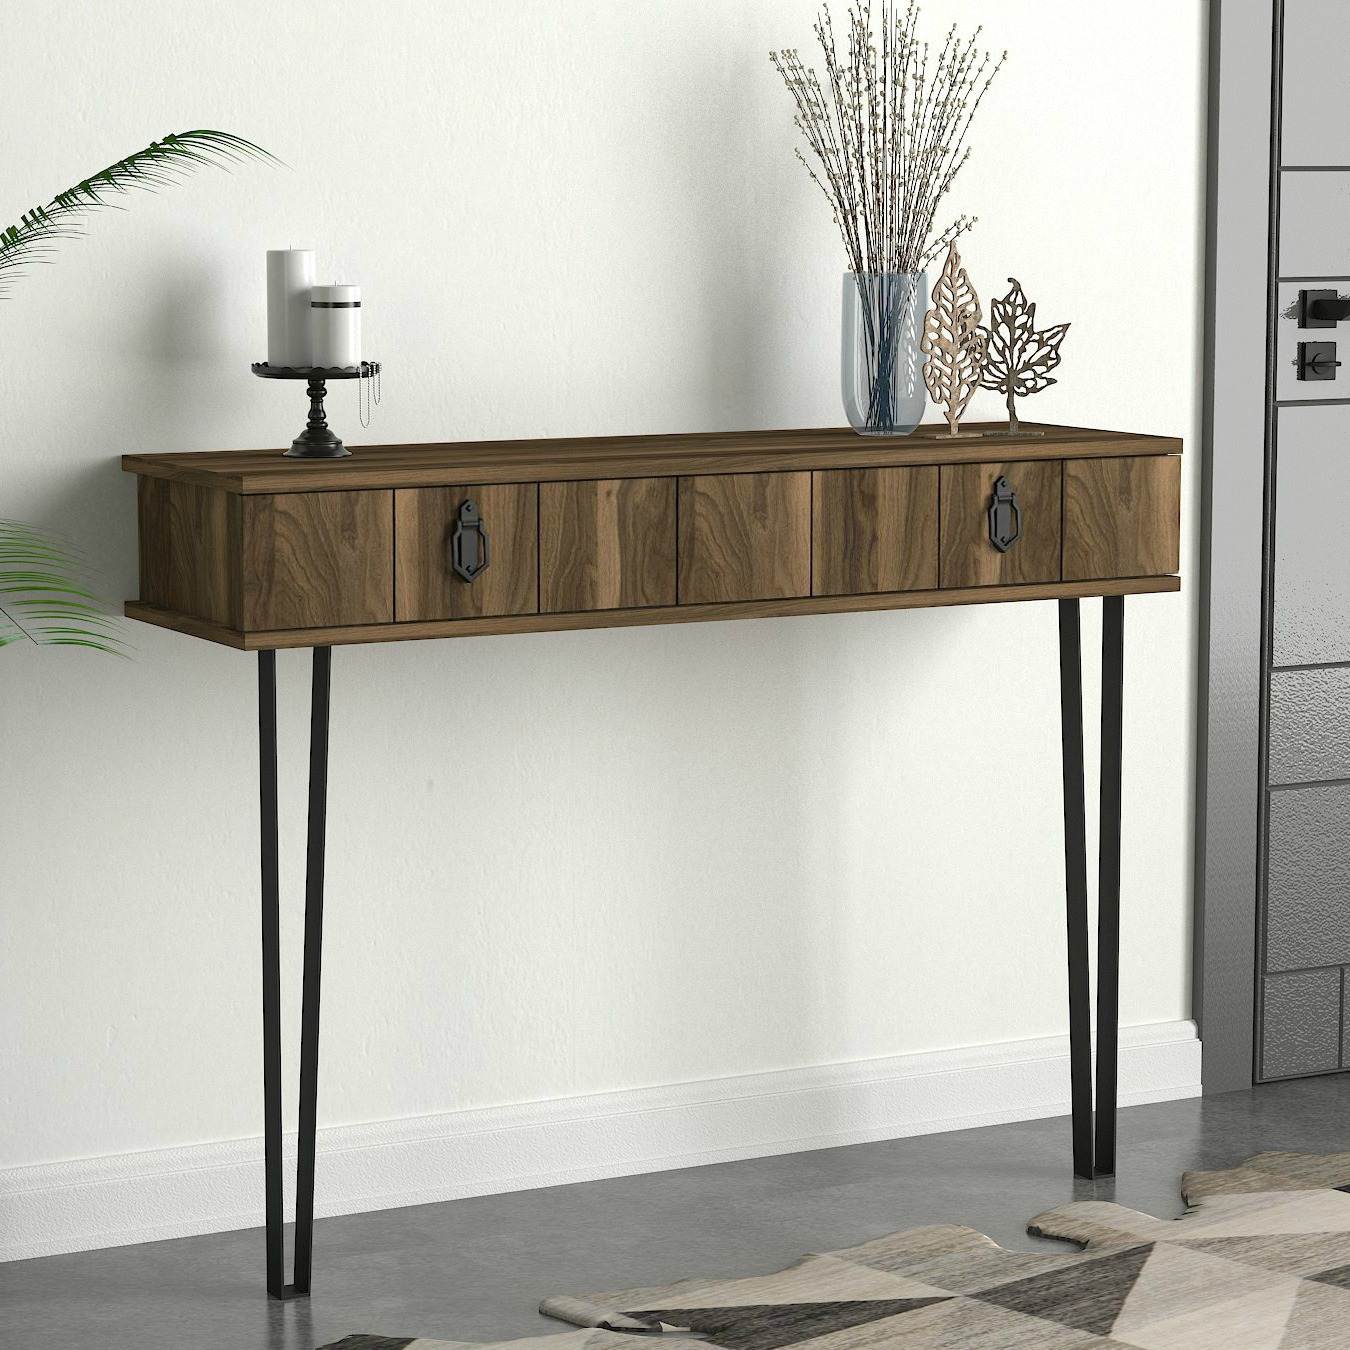 White Resin Folding Table, Narrow Console Table Vintage Industrial Furniture 1 Drawer Hallway Metal Legs Ebay